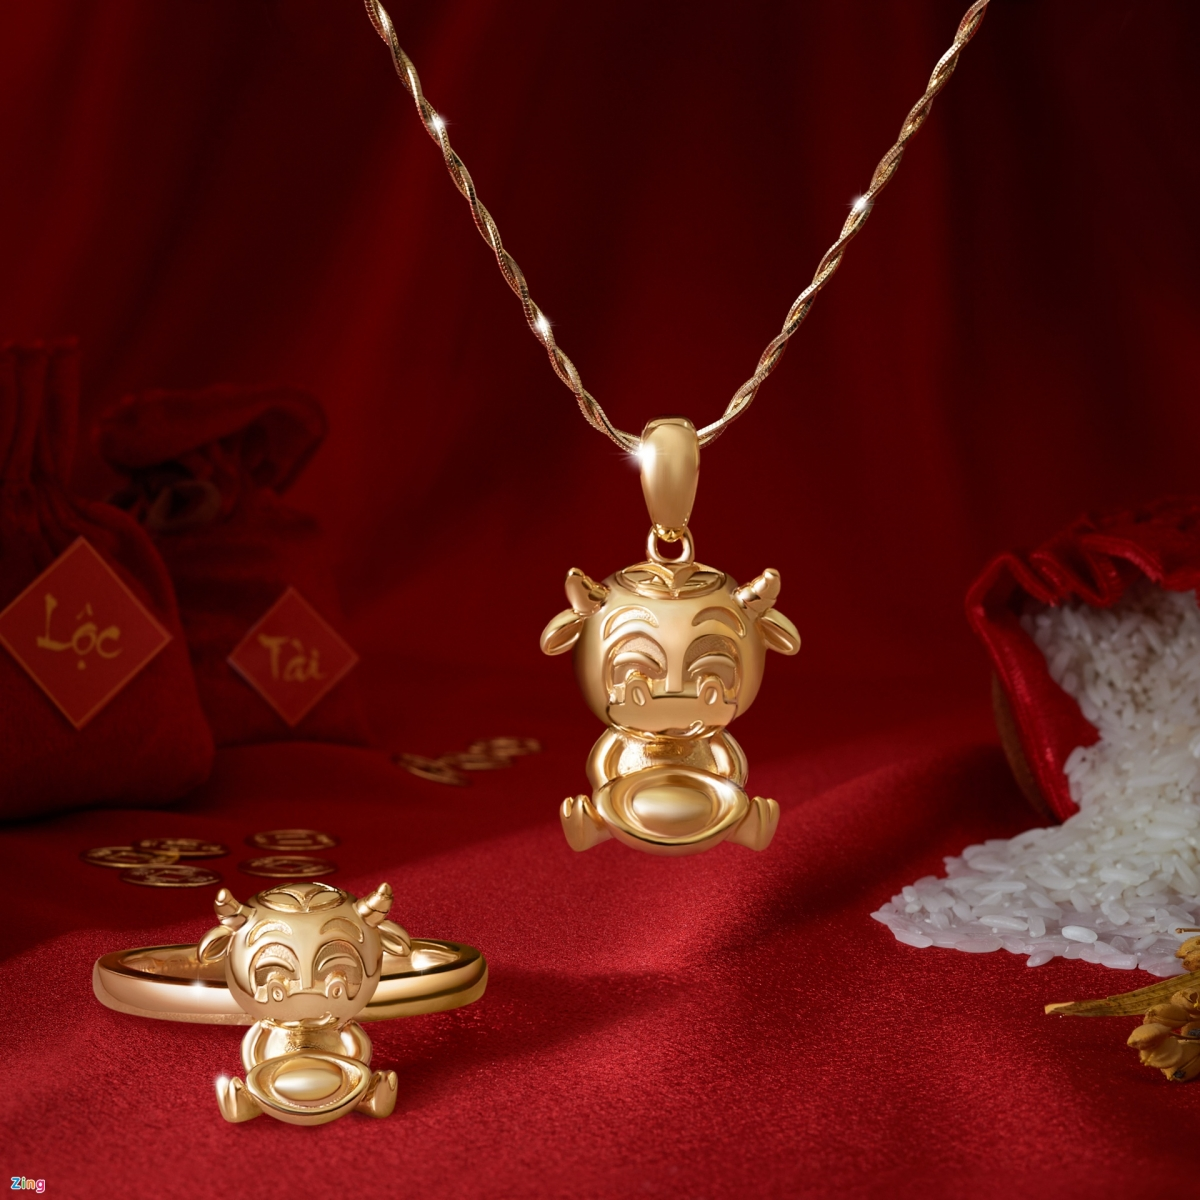 A collection of 18k gold items sends a message of happiness, peace, and wealth. Necklaces are priced at VND6 million each, whilst rings are valued at VND8 million each.